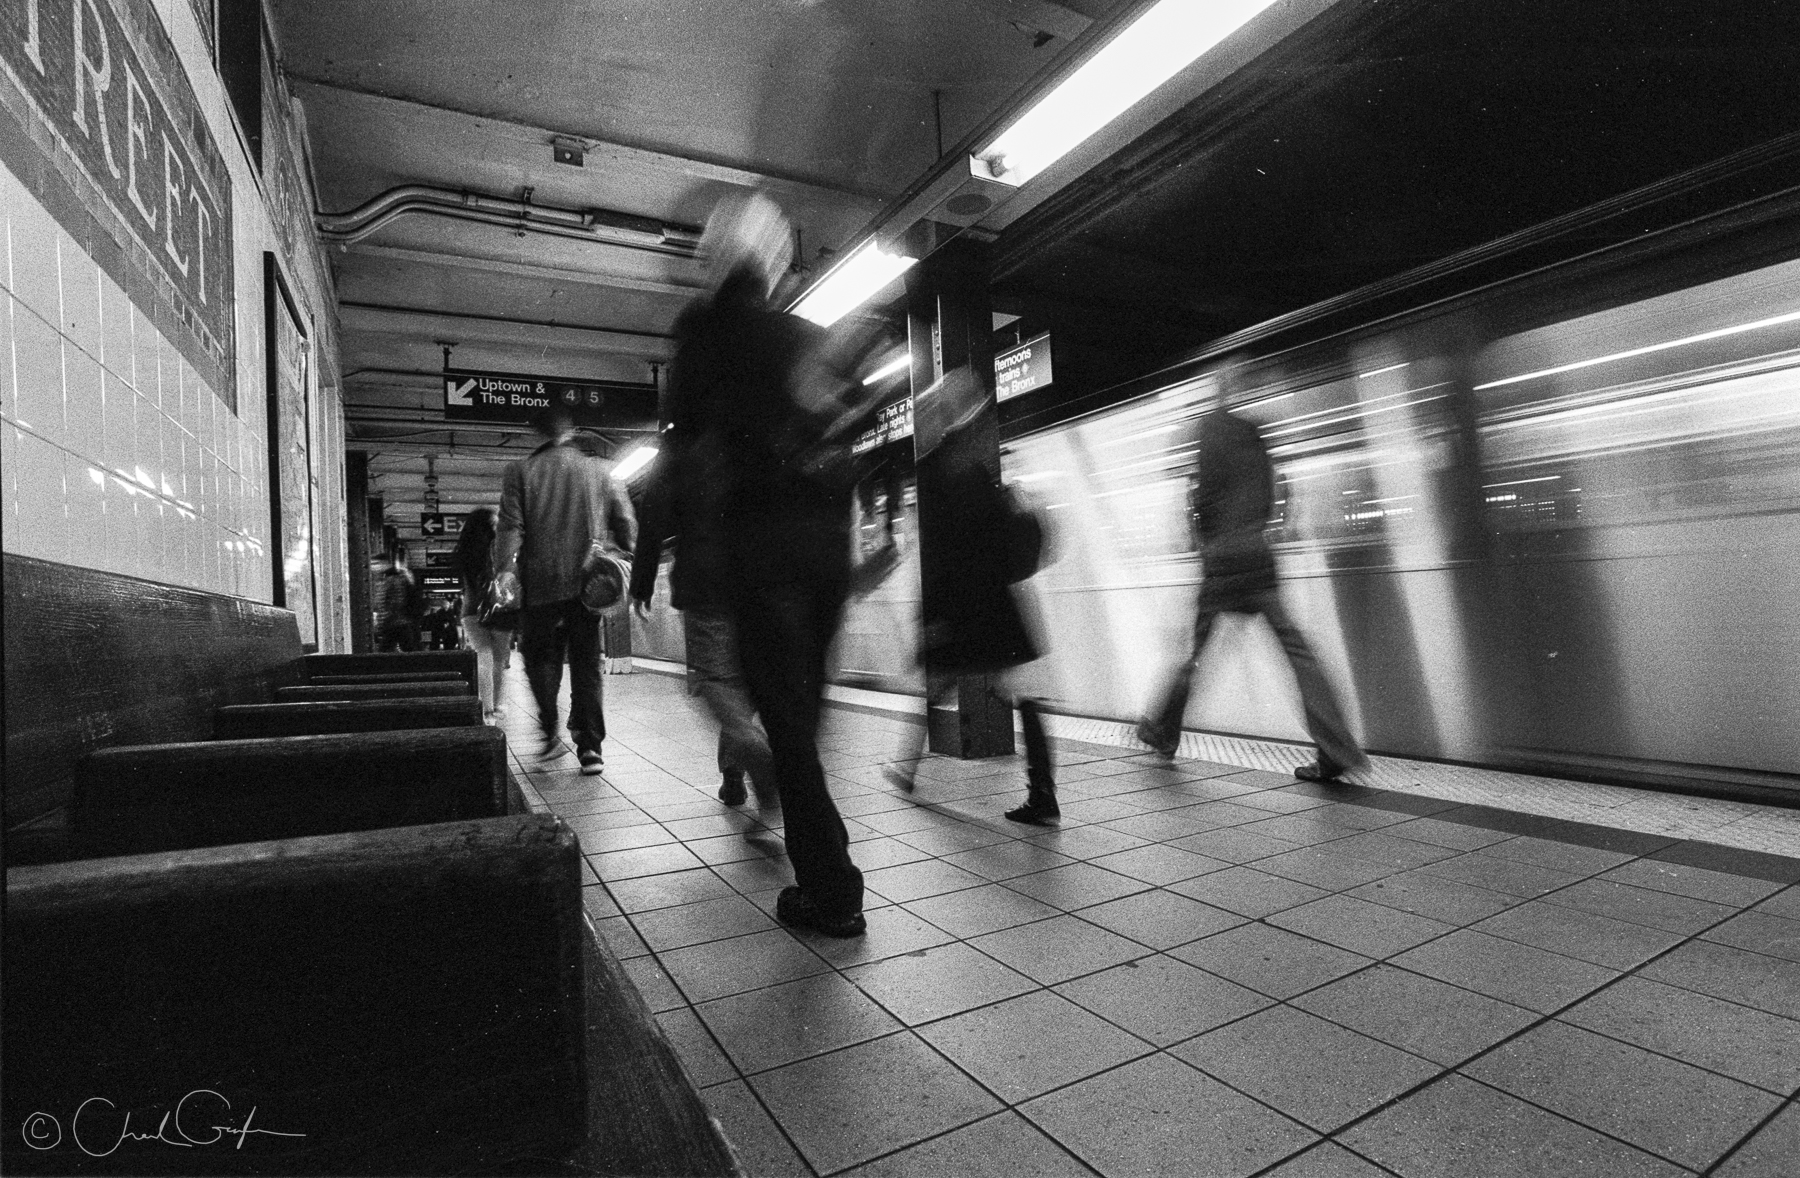 Figures in a Train Station (Image by Chad Gayle)